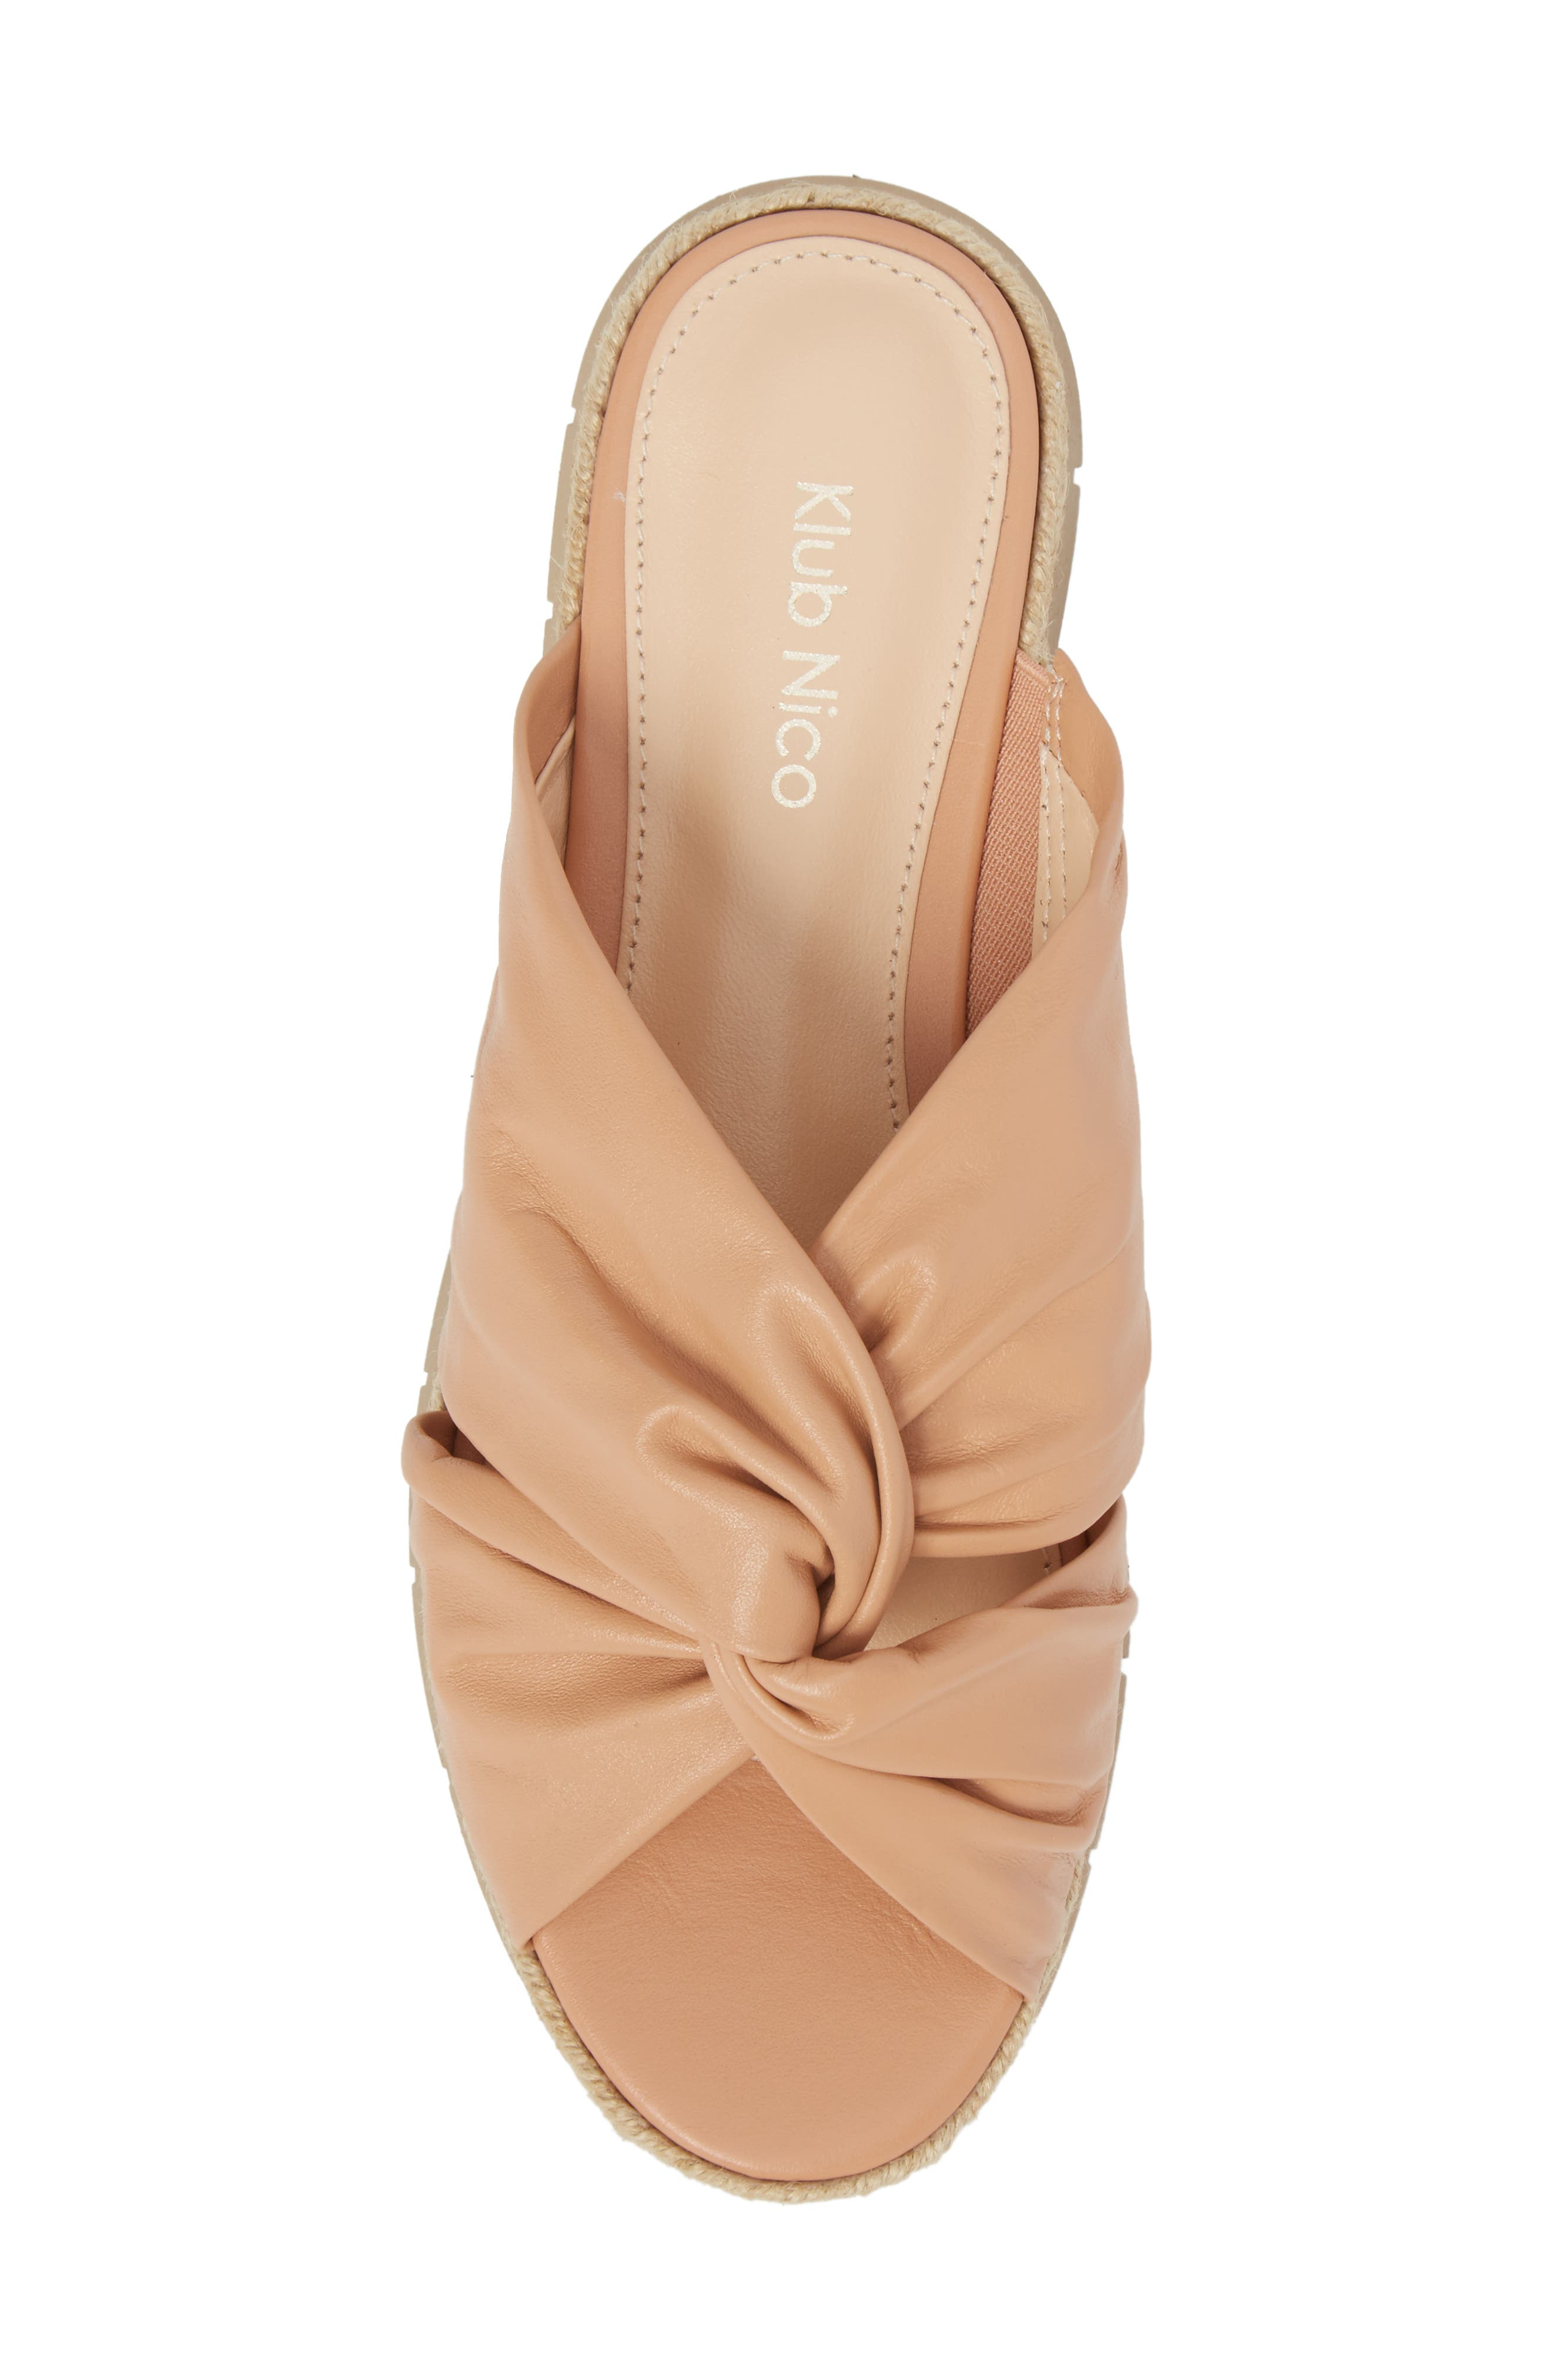 KLUB NICO, Charlie Slide Sandal, Alternate thumbnail 5, color, PEACH LEATHER